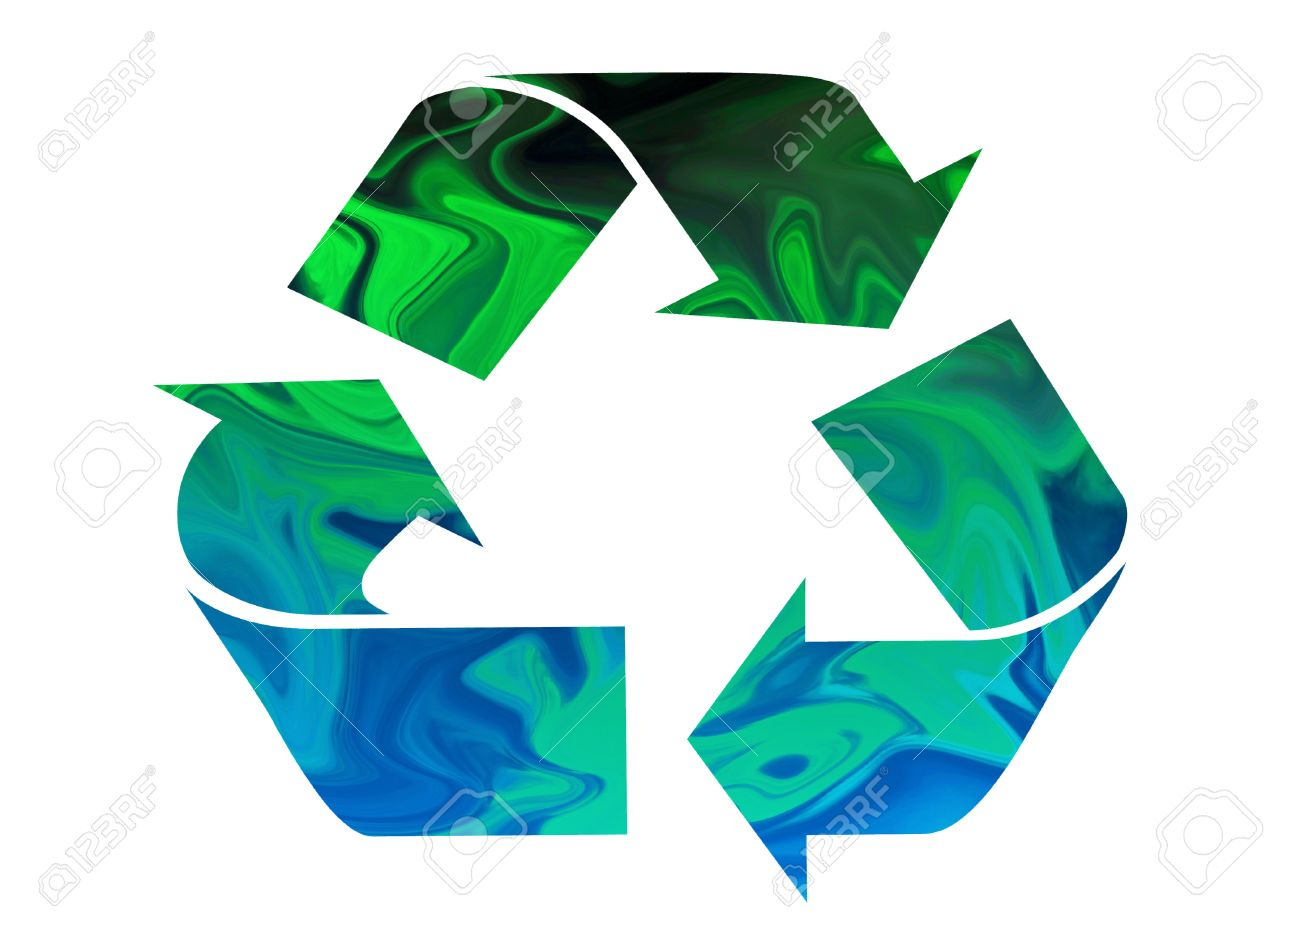 Recycle symbol moving from green to blue symbolizing Earth and Water Stock Photo - 24498923